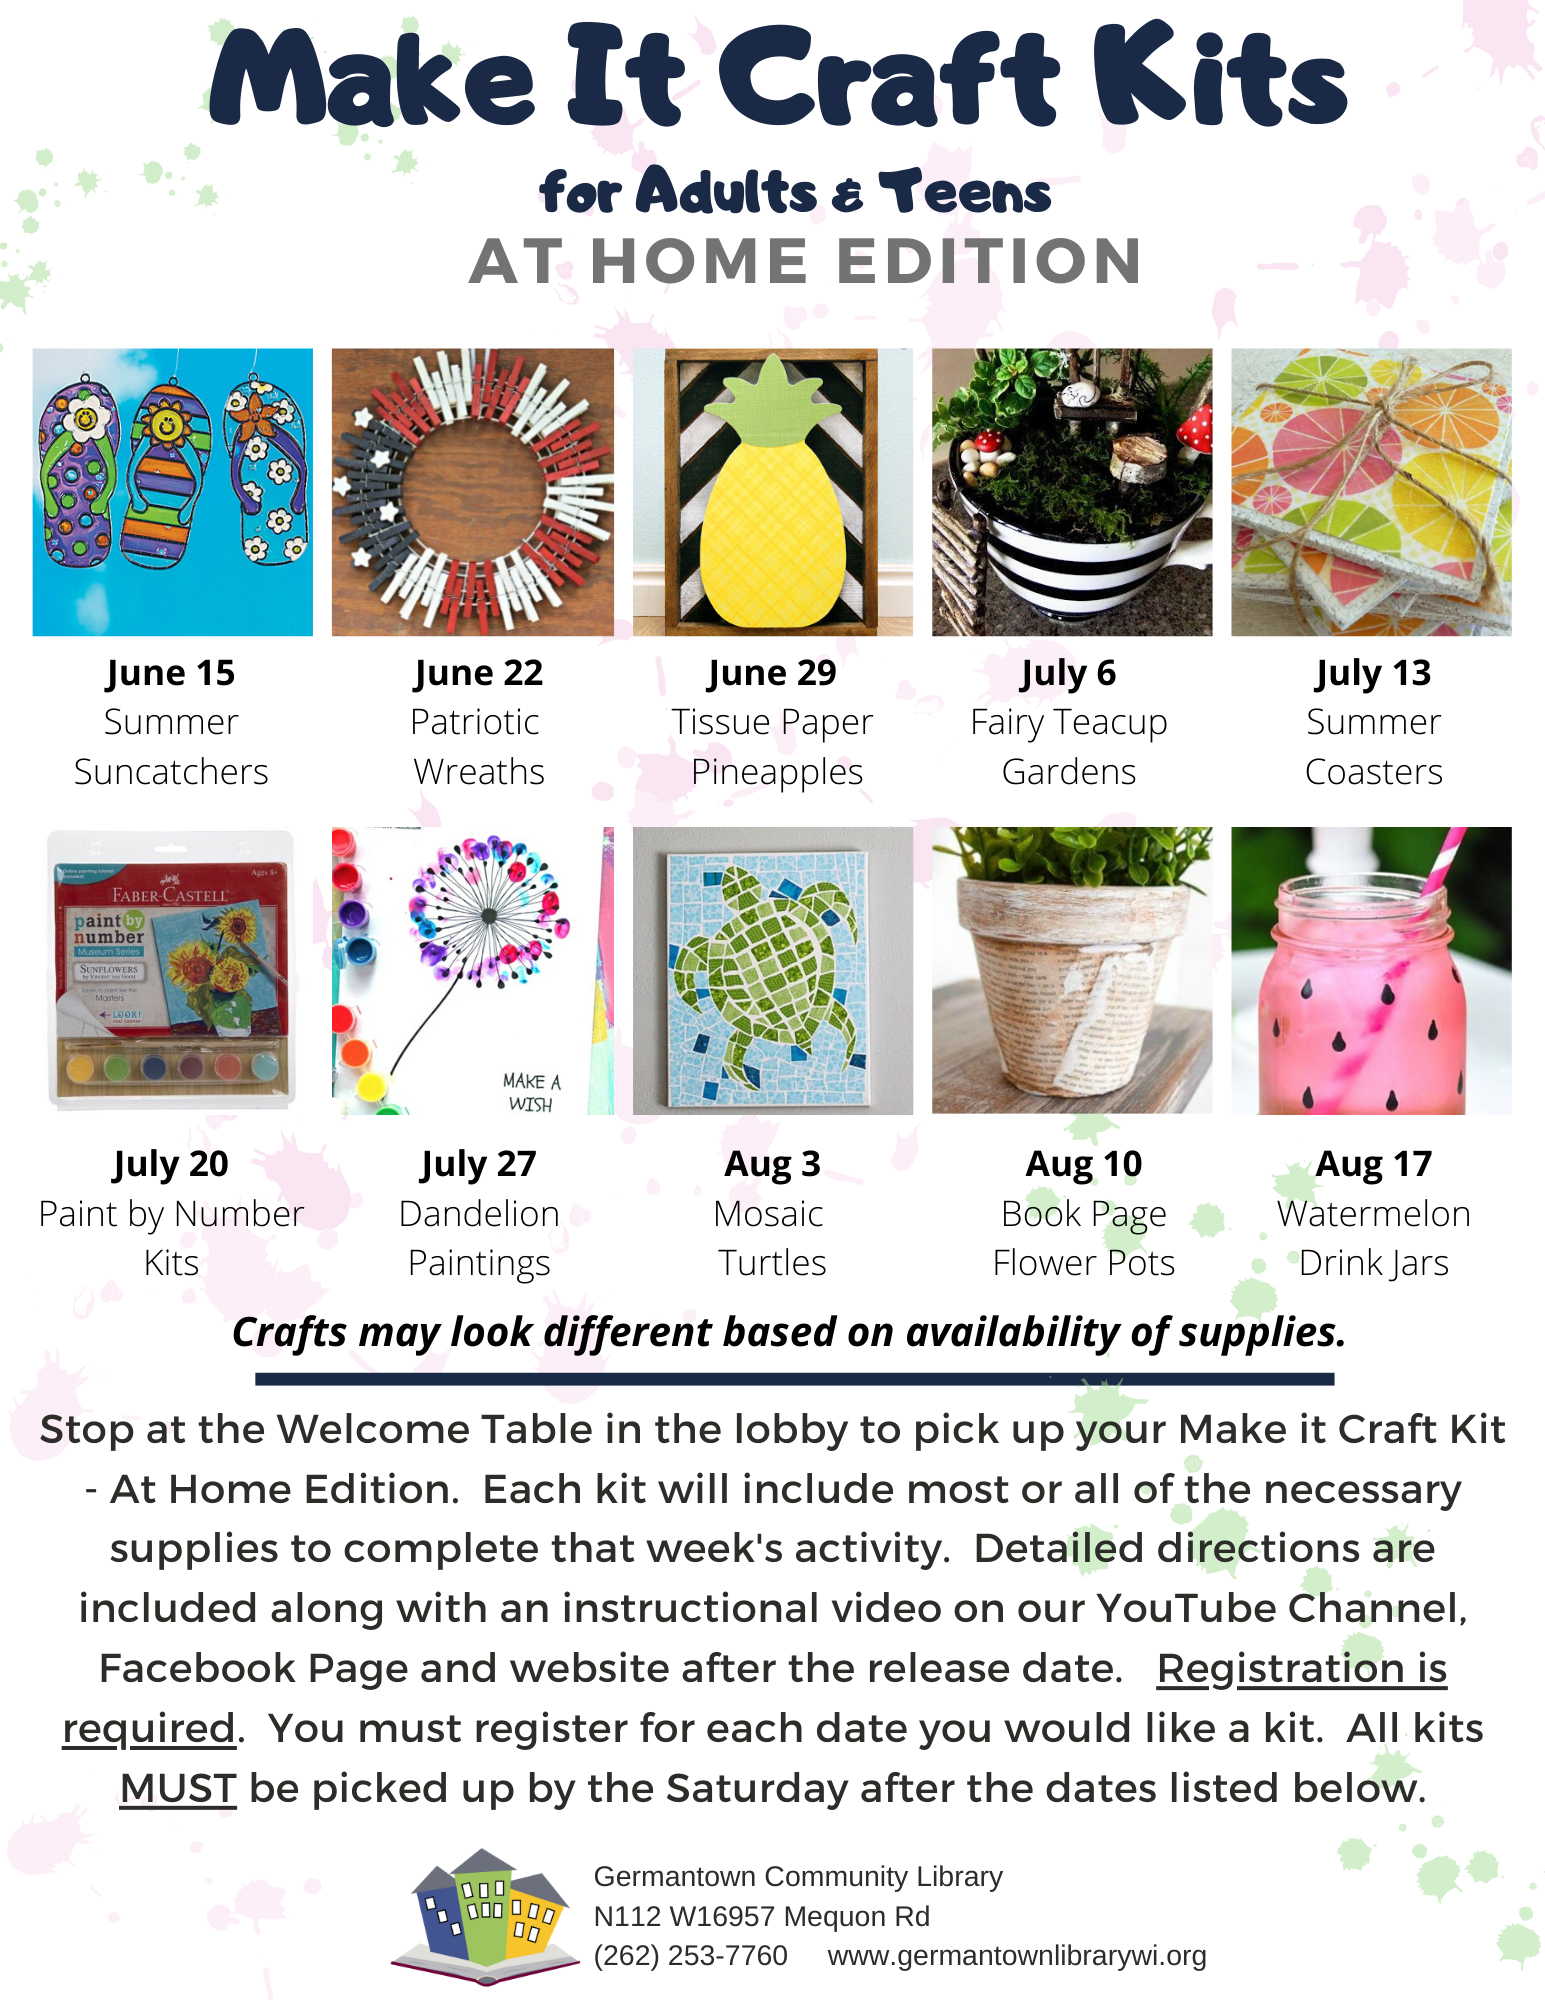 Make It Craft Kits - At Home Edition (Paint by Number Kits)